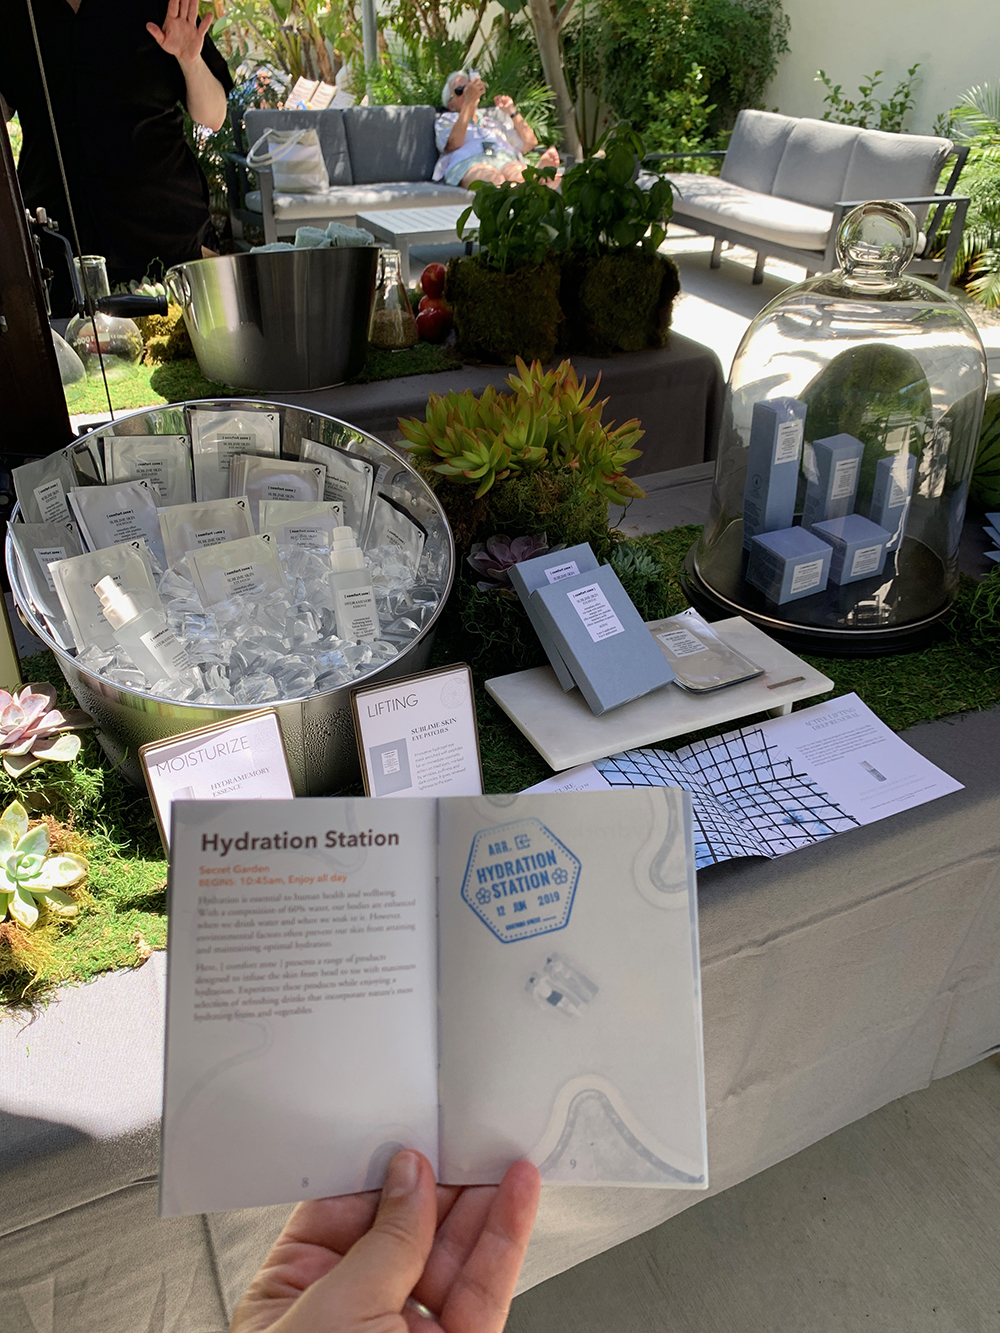 I cooled off at the Hydration Station with refreshing drinks and [comfort zone] products.